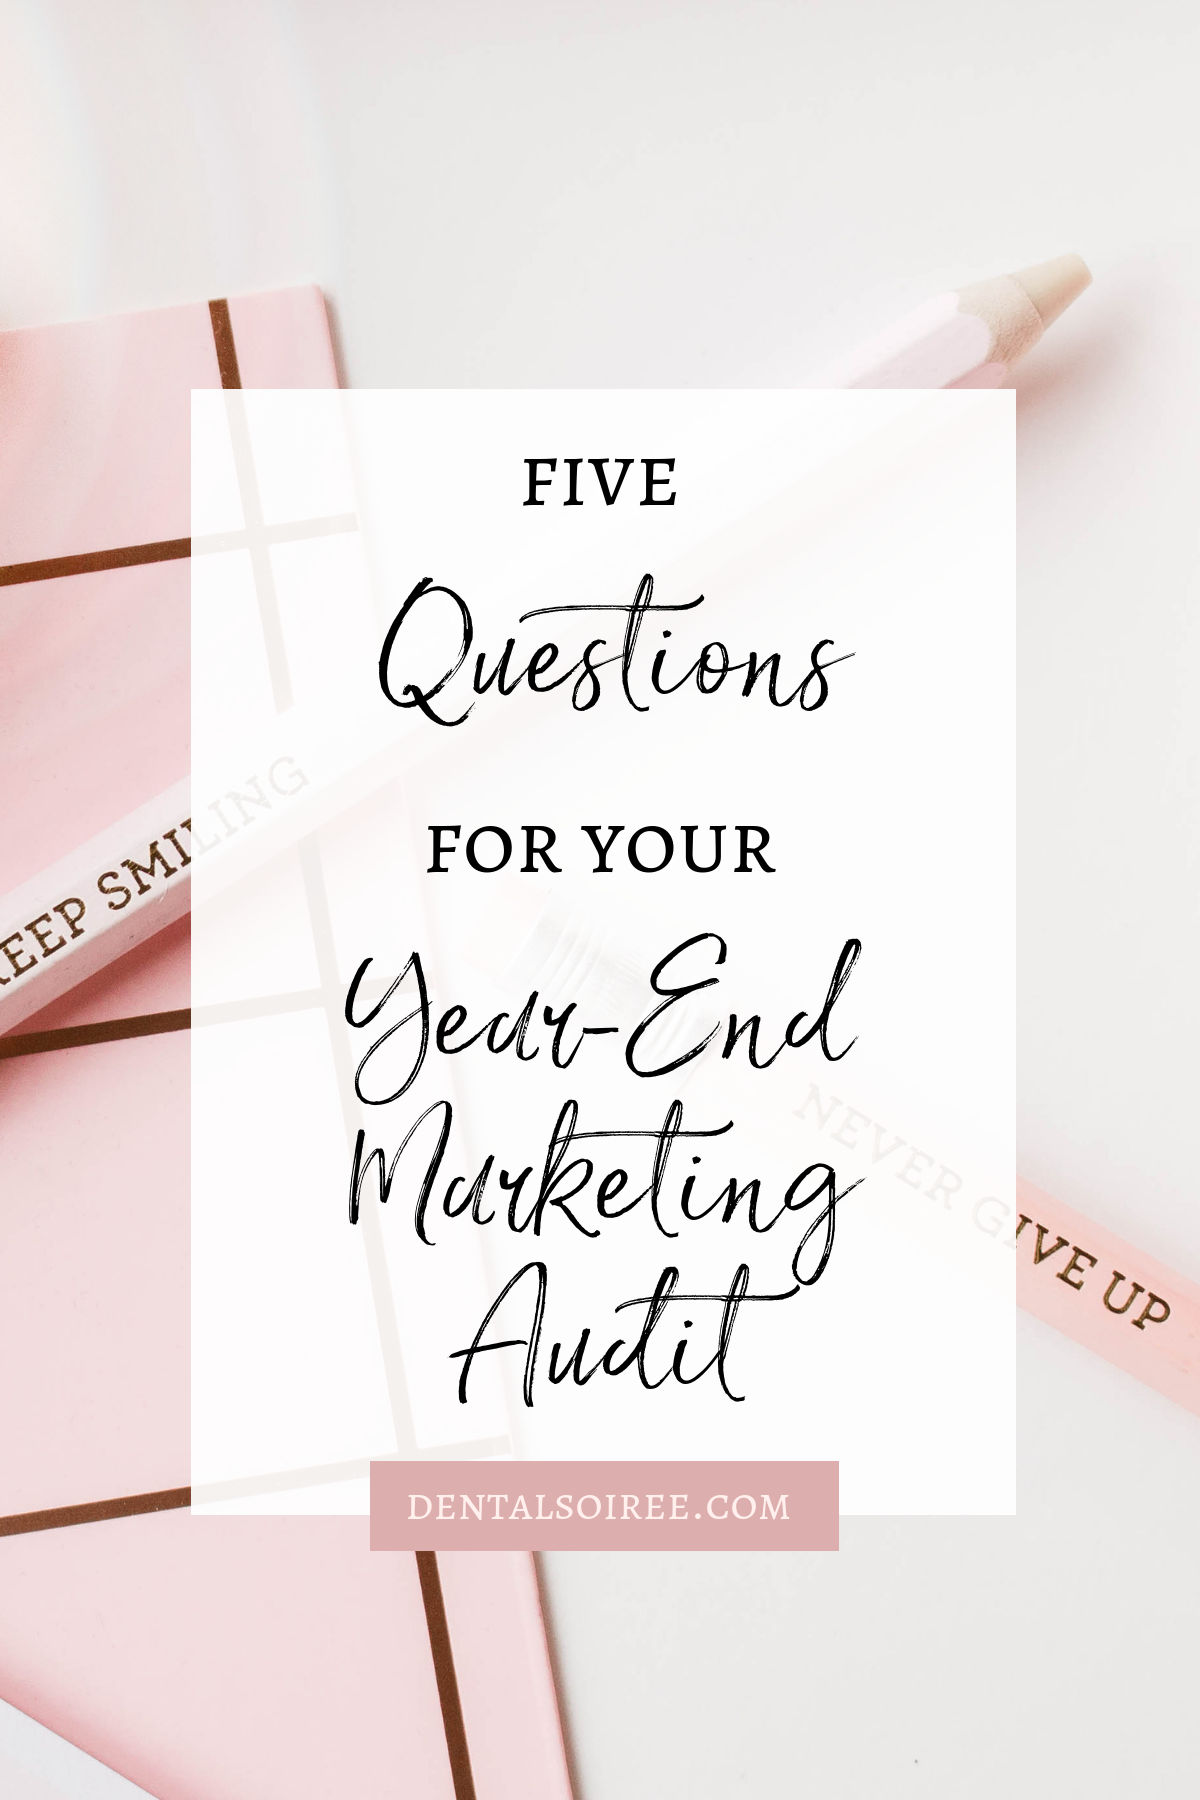 5 Questions for Your Year-End Marketing Audit